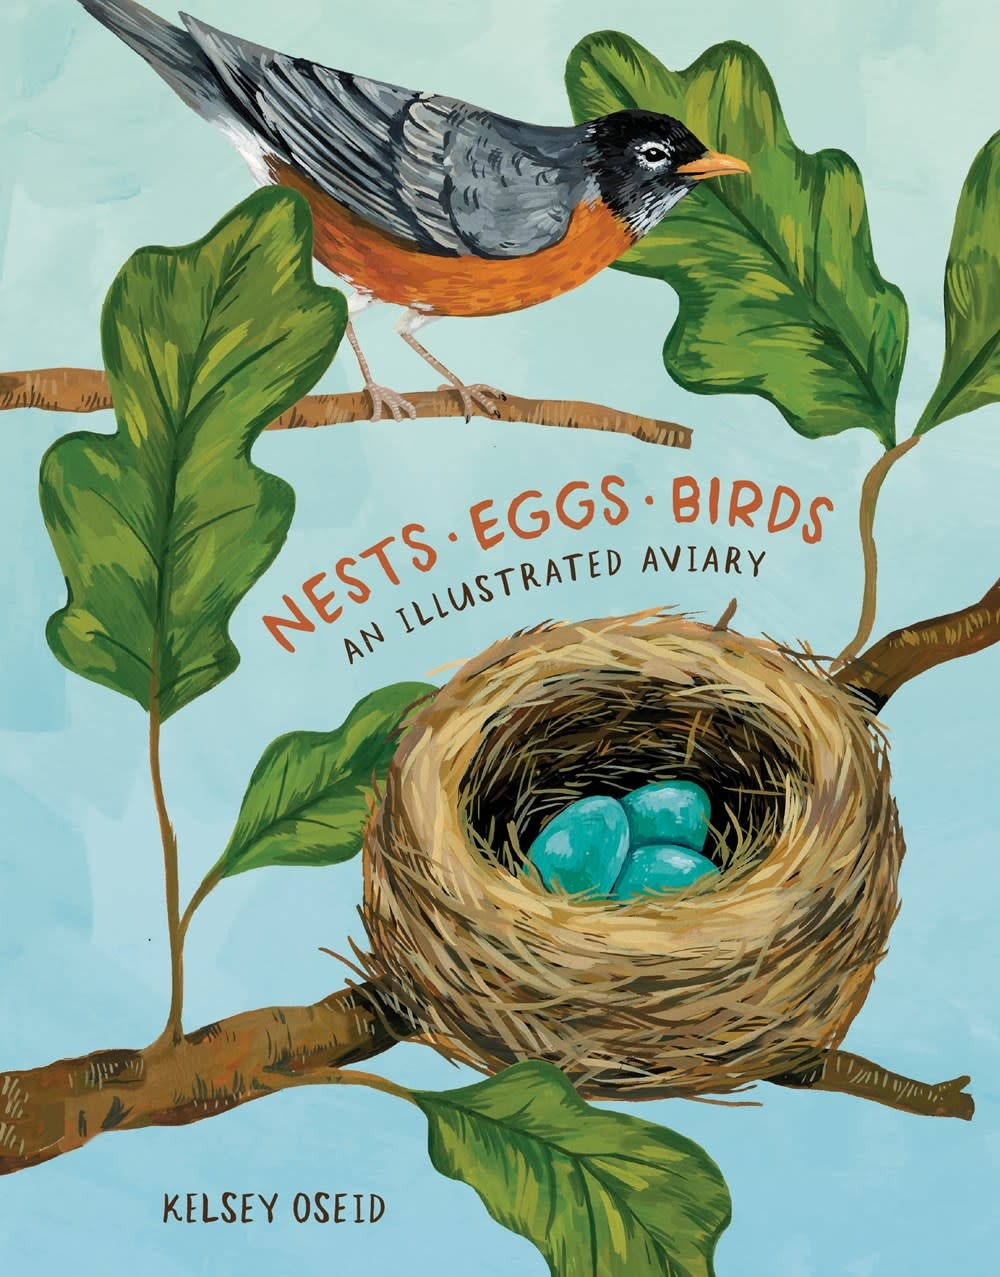 Ten Speed Press Nests, Eggs, Birds: An Illustrated Aviary